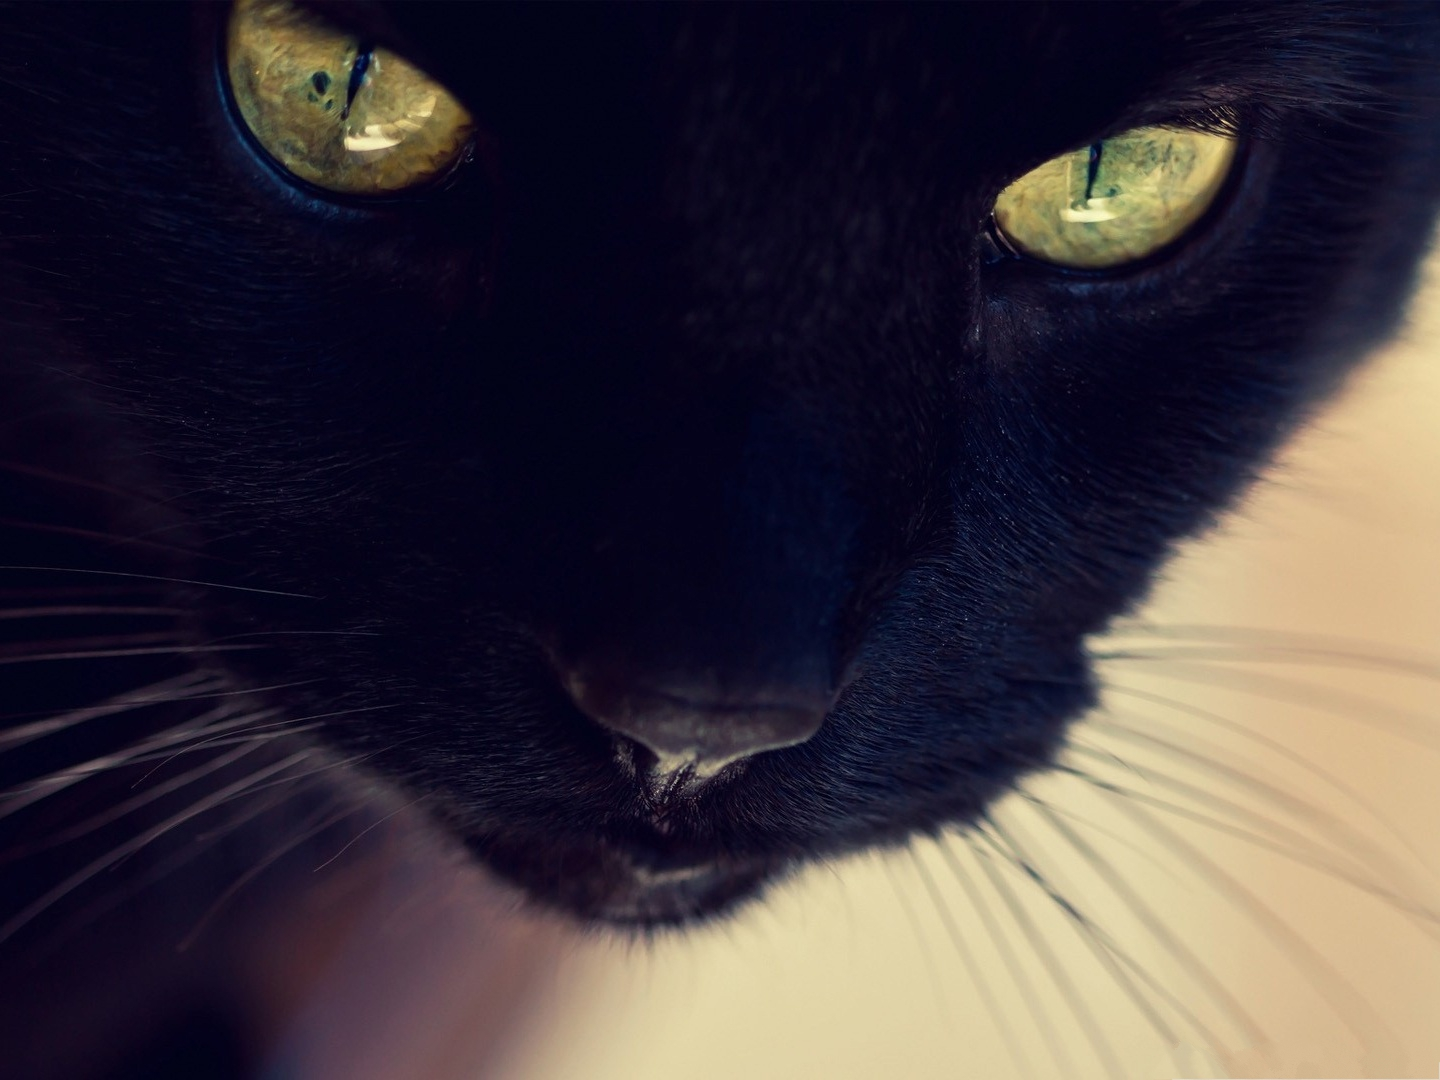 click to free download the wallpaper--Black Cat Wallpaper, Kitten in Yellow Eyes, Impressive Look 1440X1080 free wallpaper download